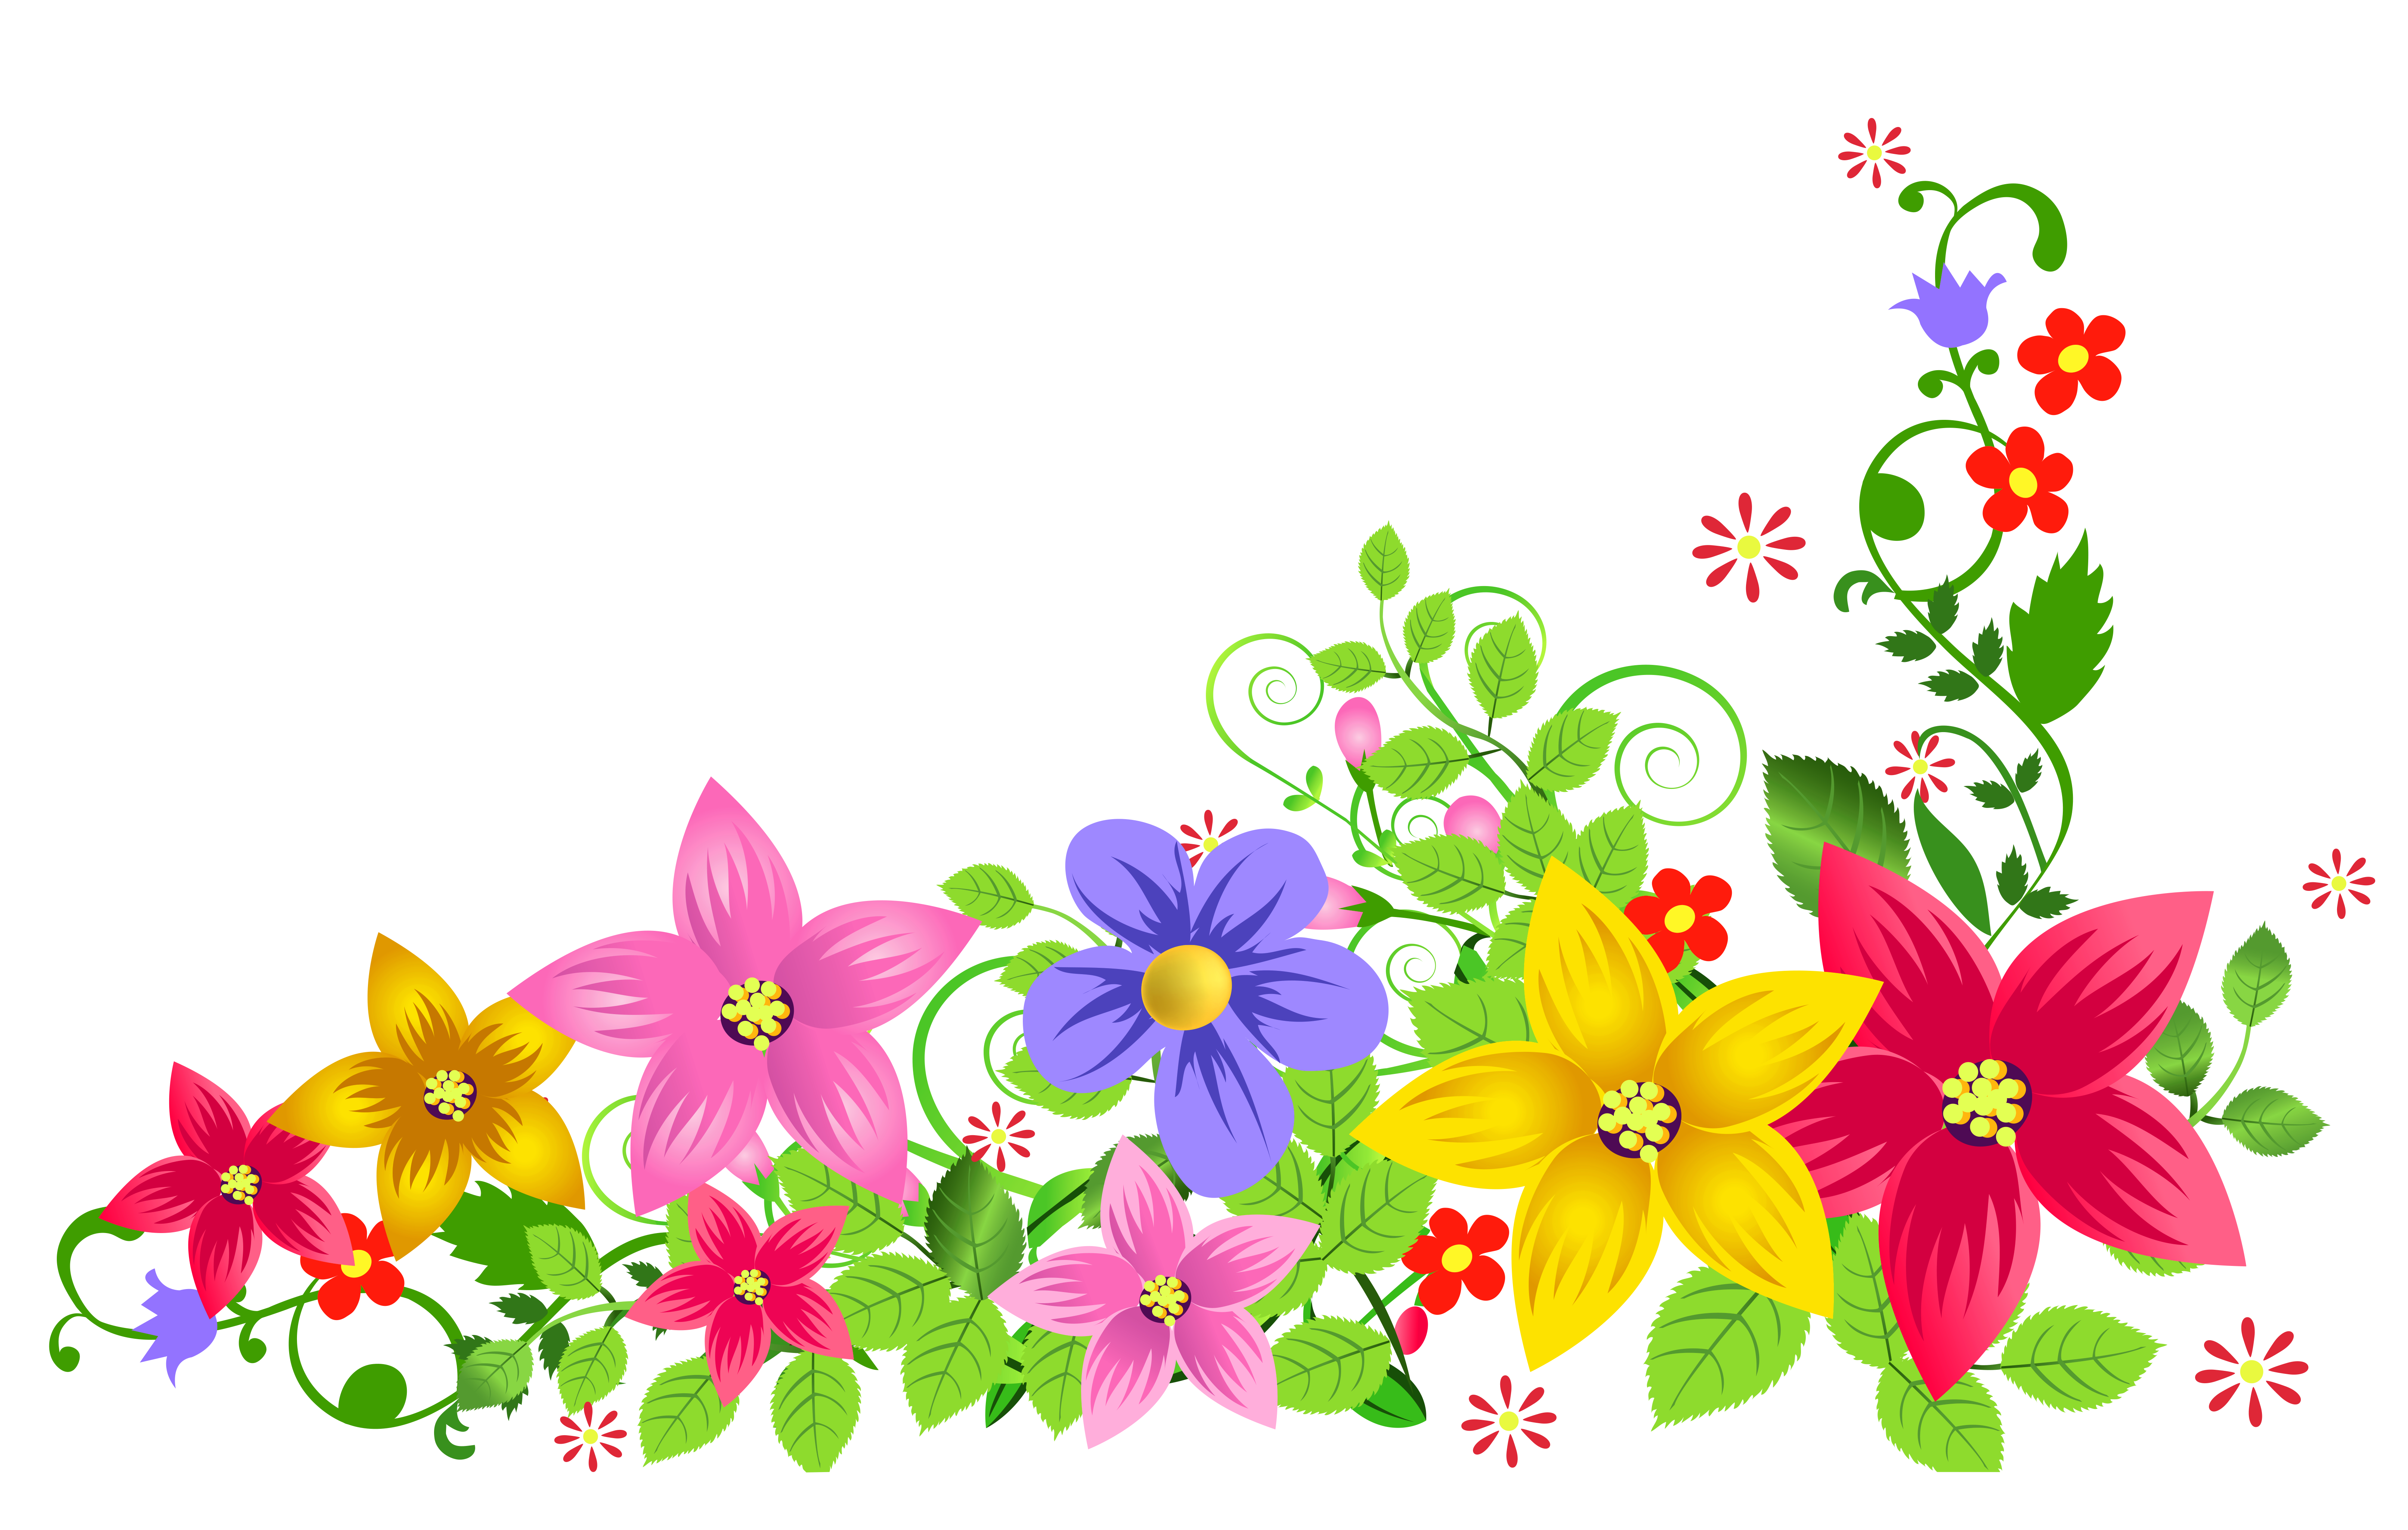 HD flowers of various colors,